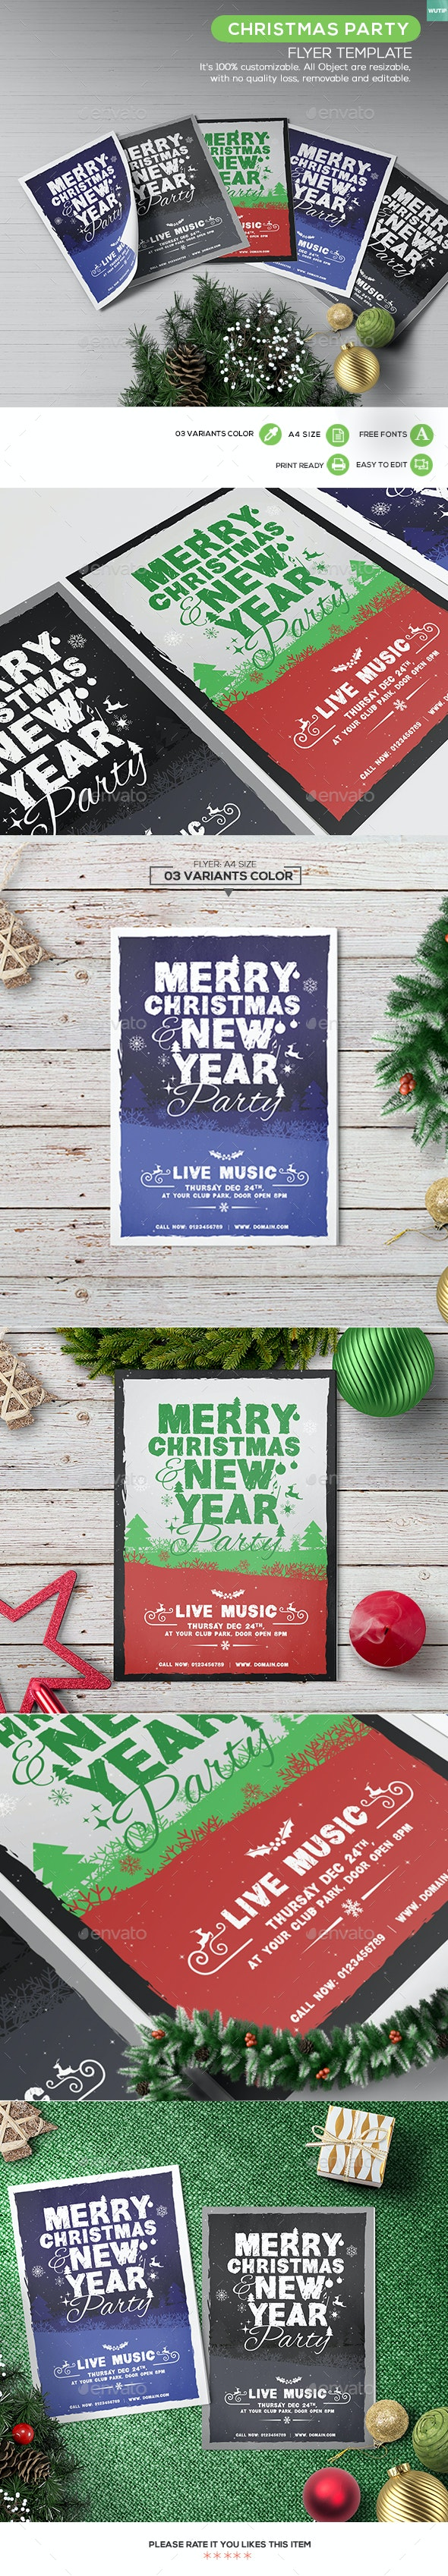 Christmas Party - Flyer Template 04 - Holidays Events